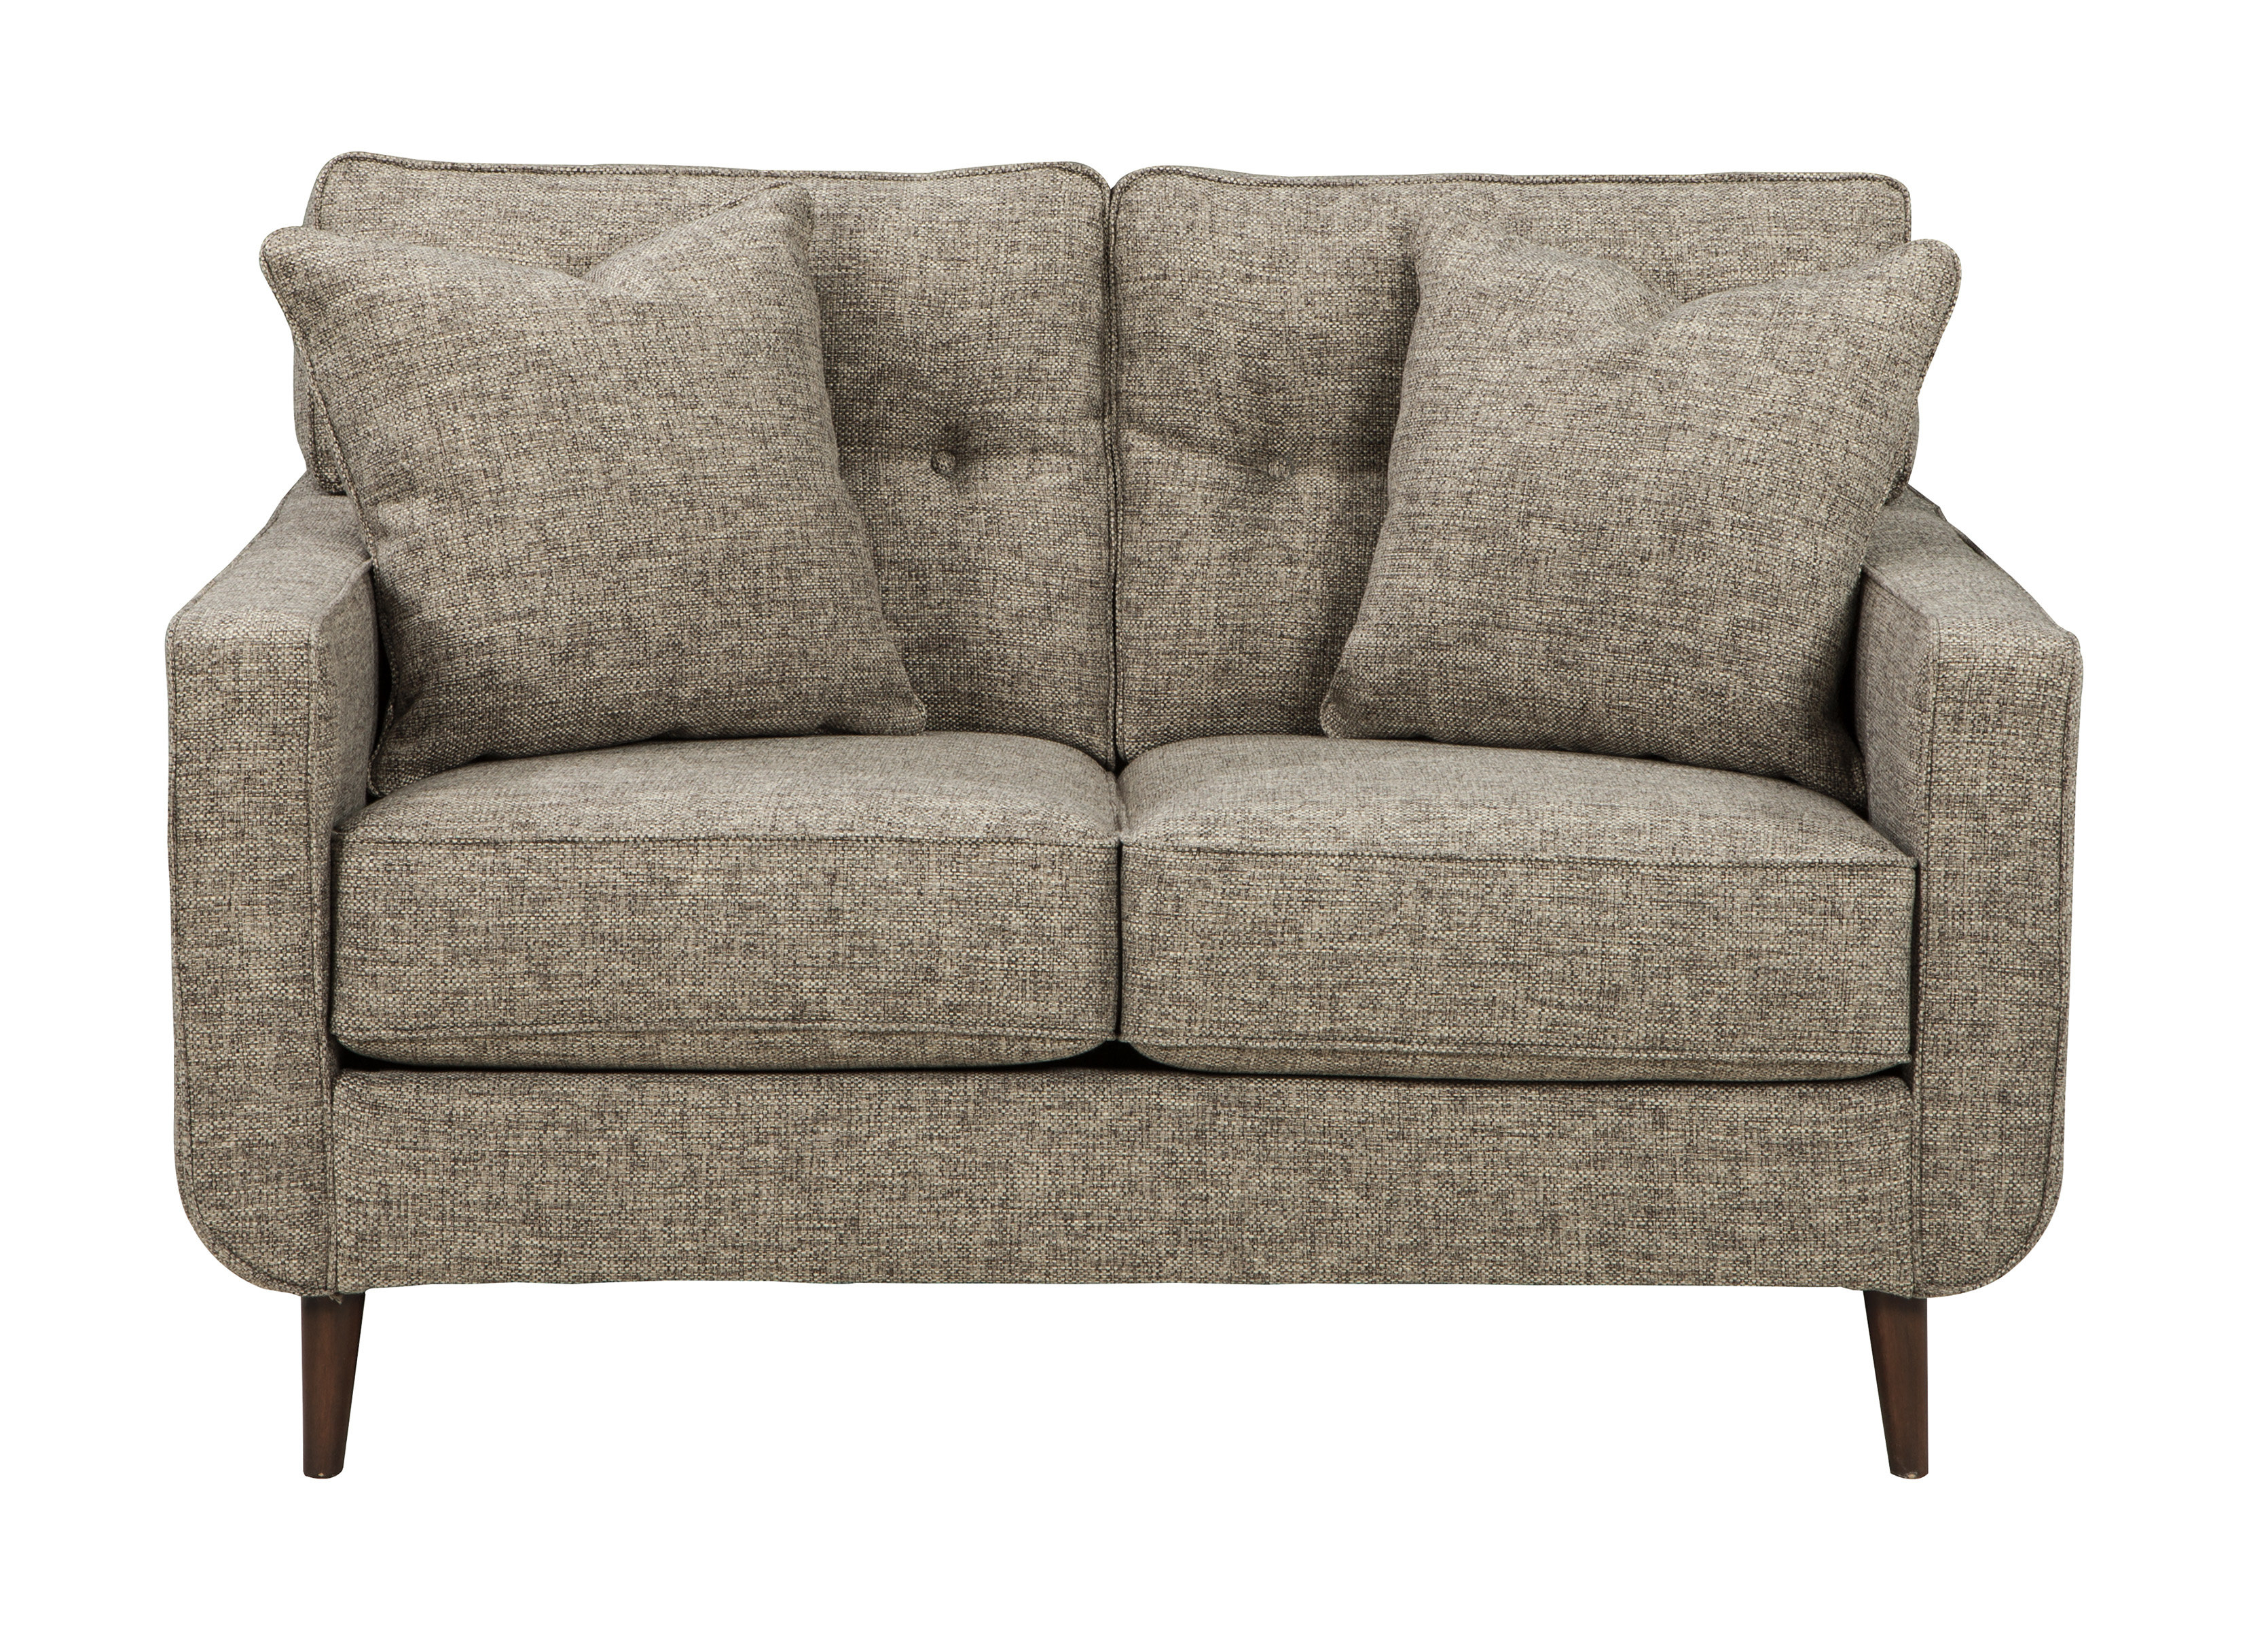 Grandin Loveseat | Allmodern Inside Grandin Leather Sofa Chairs (Image 10 of 20)